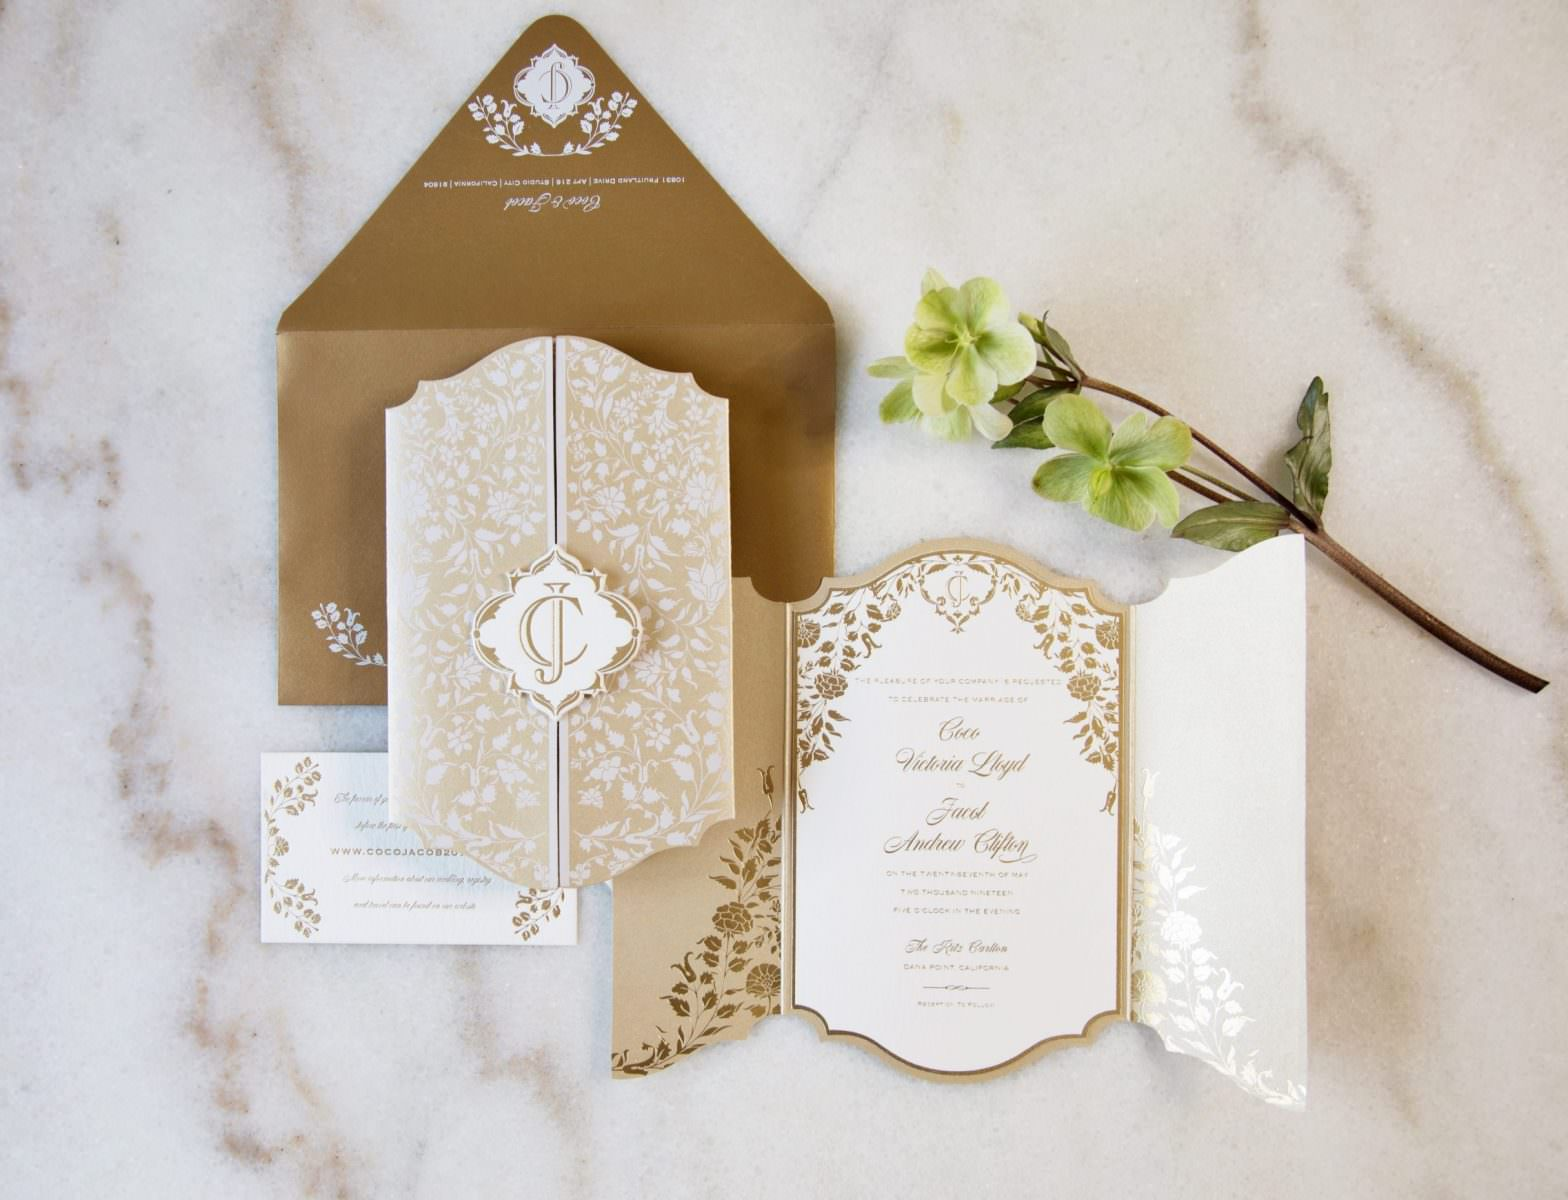 Wedding Invitation For Wedding At The Ritz-Carlton